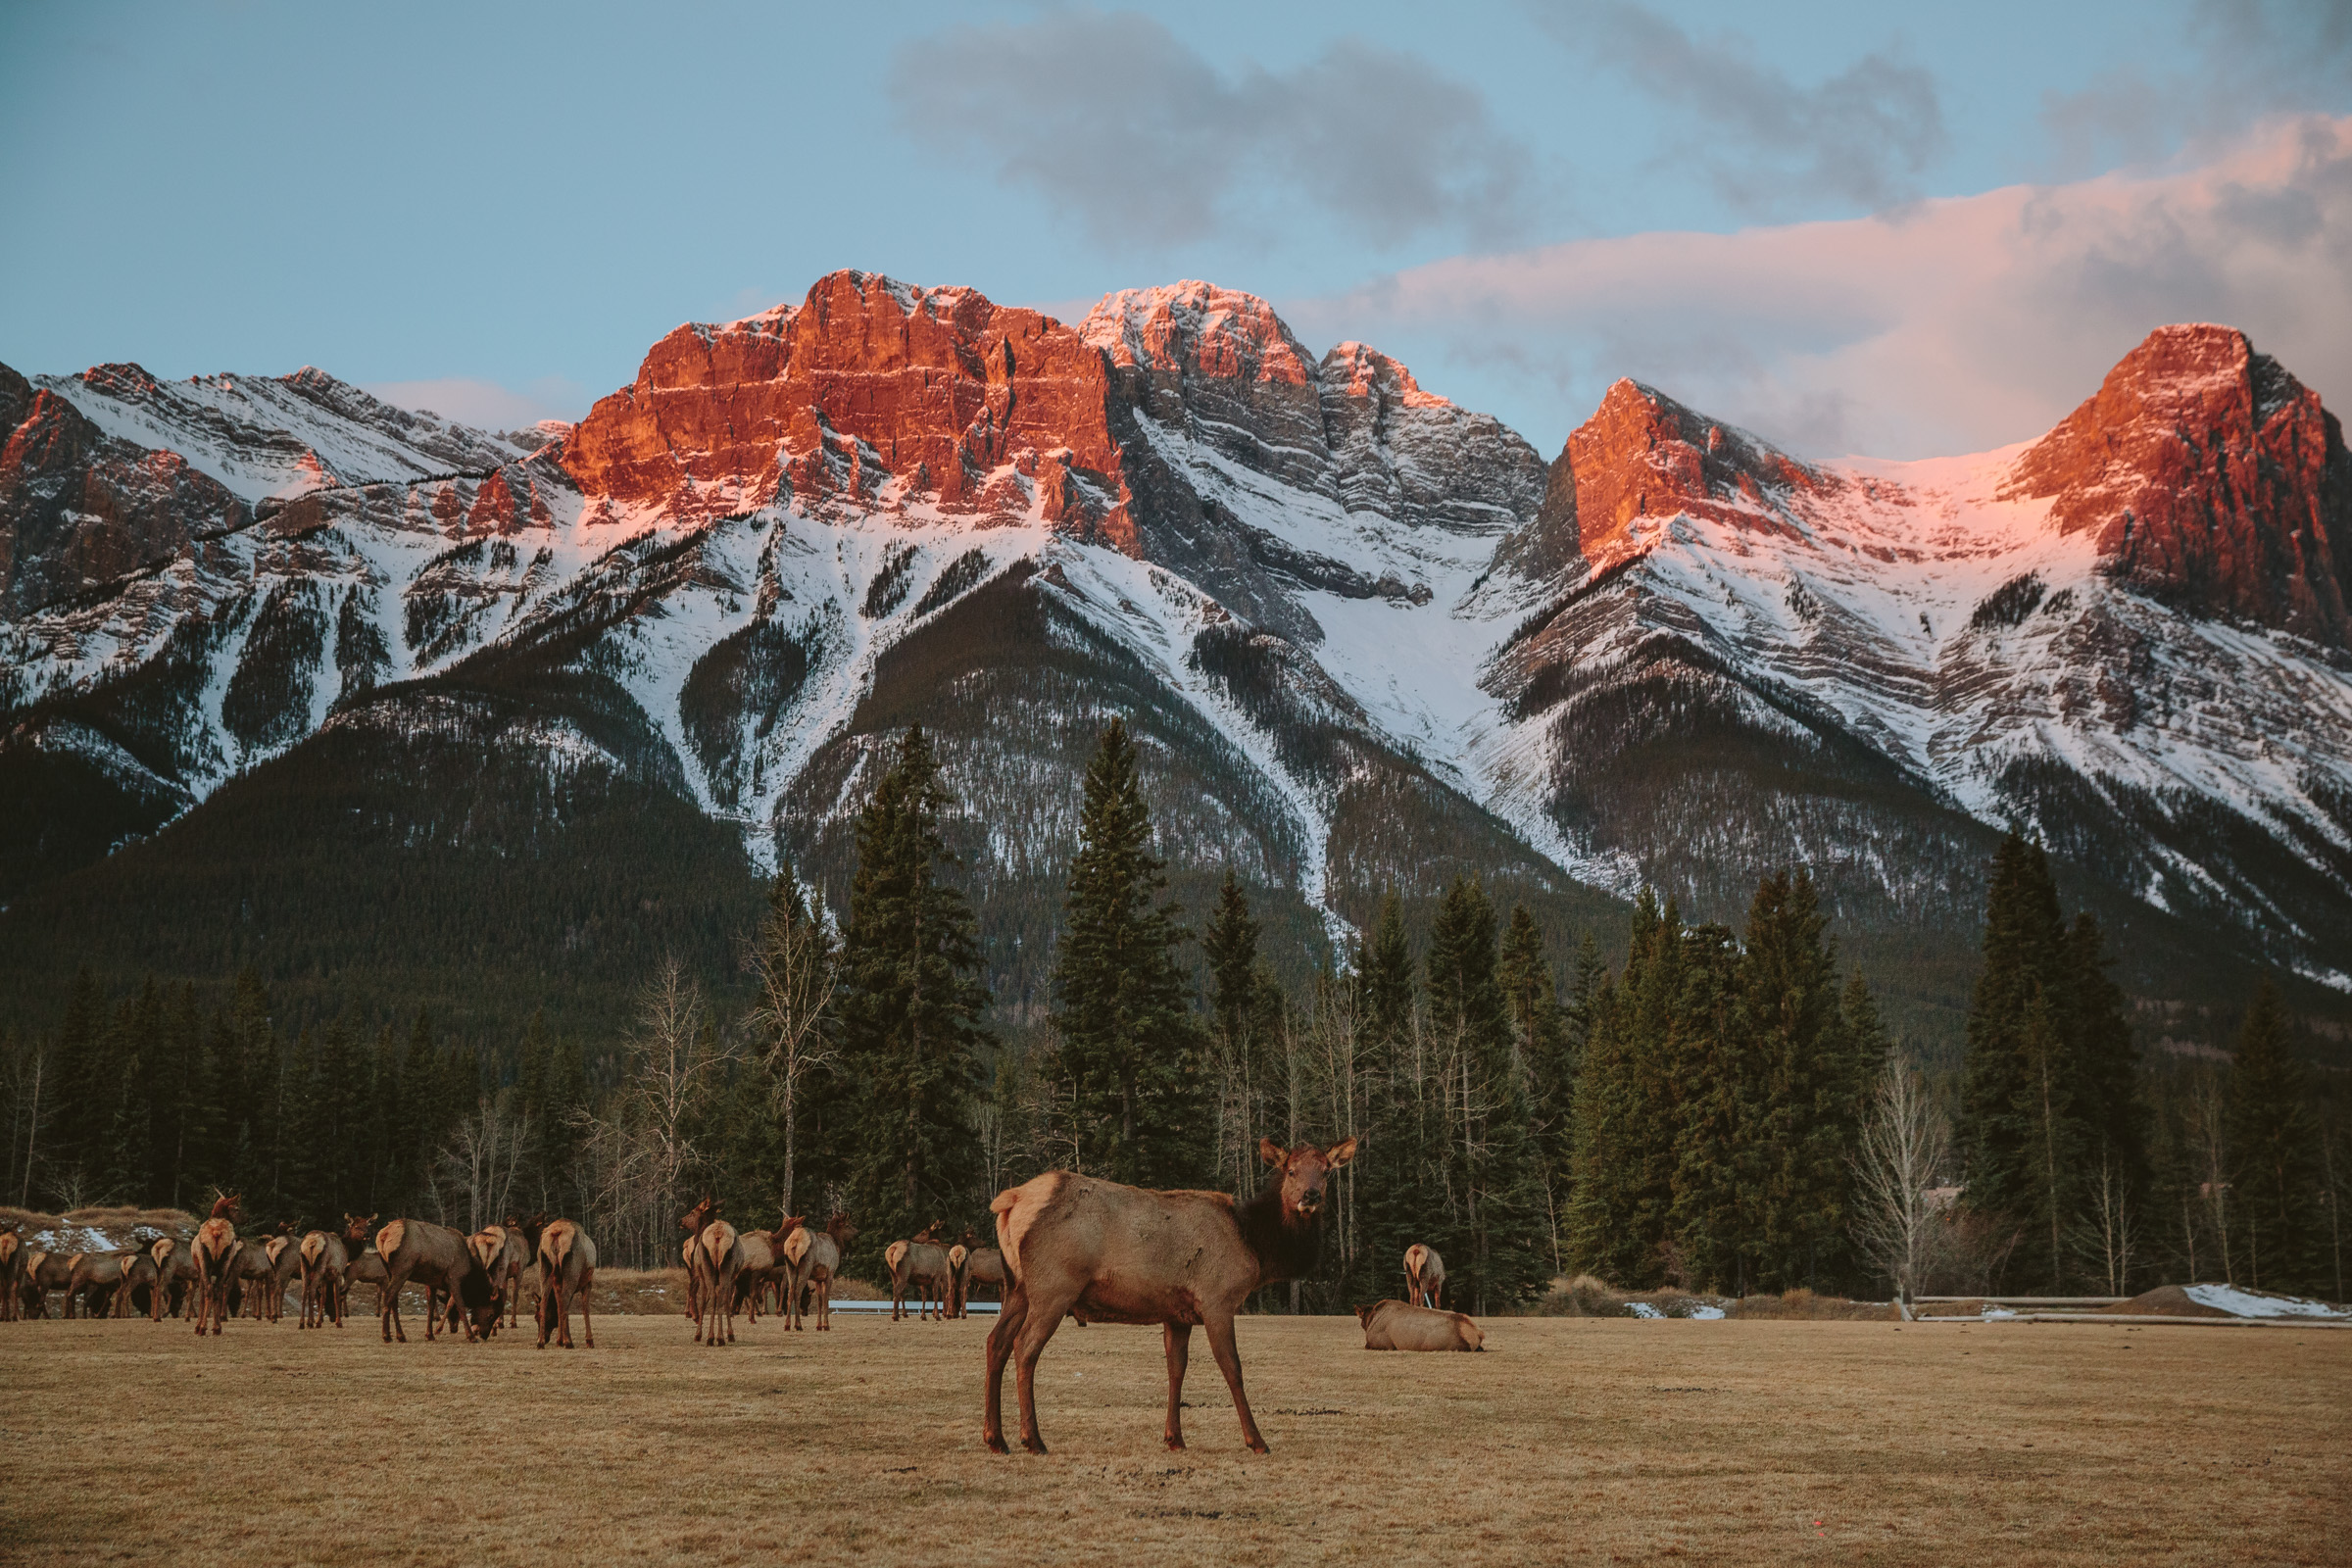 canada-alberta-lifestyle-photography-mikeseehagel-34